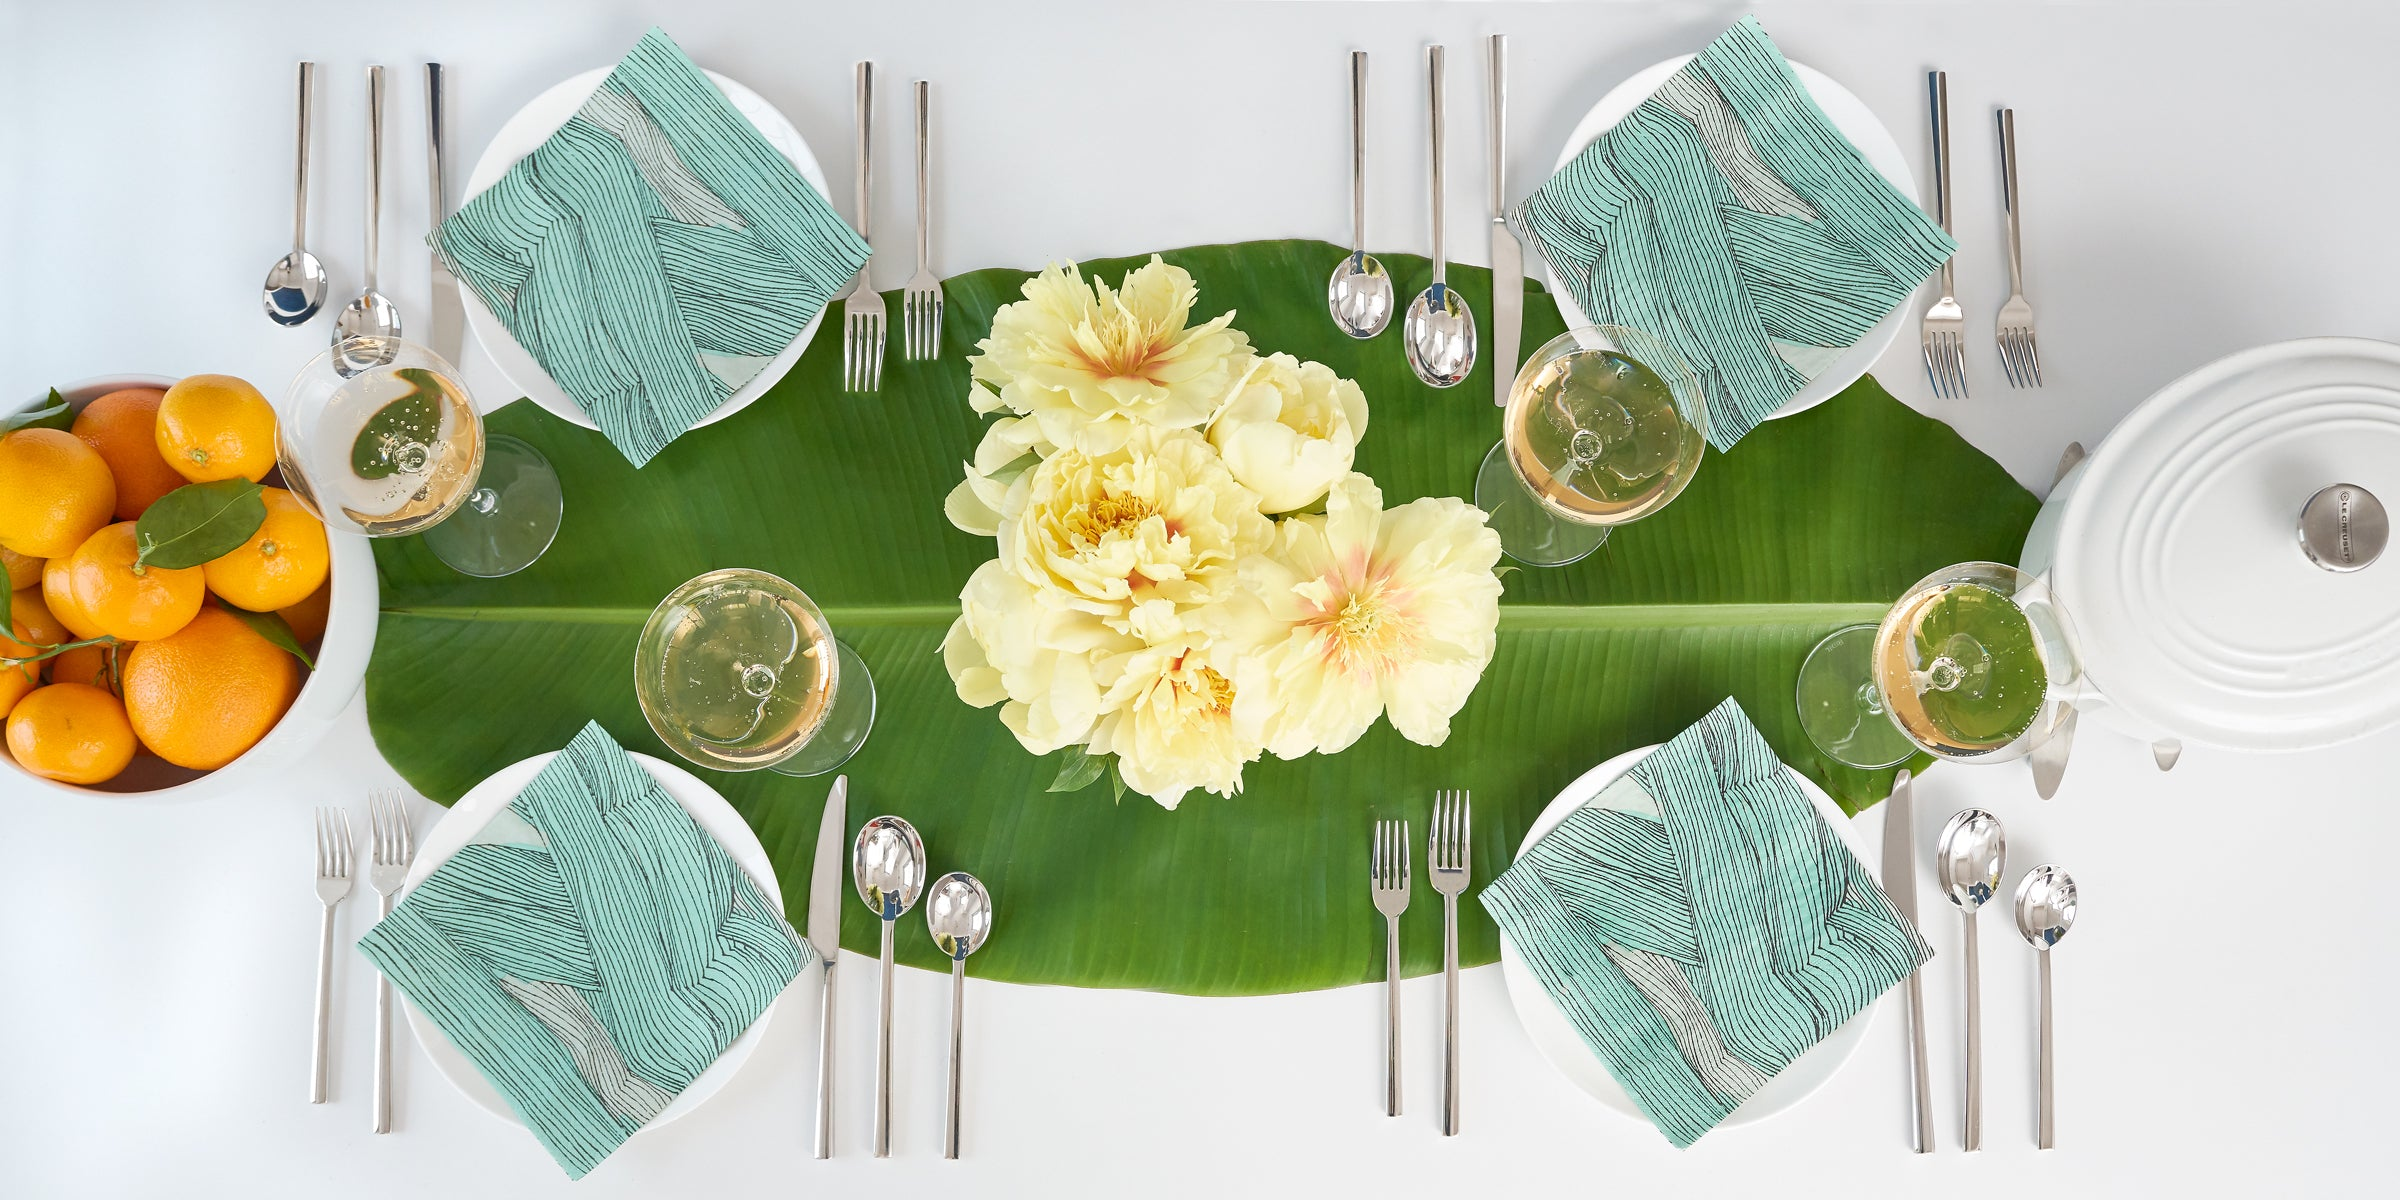 Green, black and off-white dinner napkin with modern abstract pattern in table setting